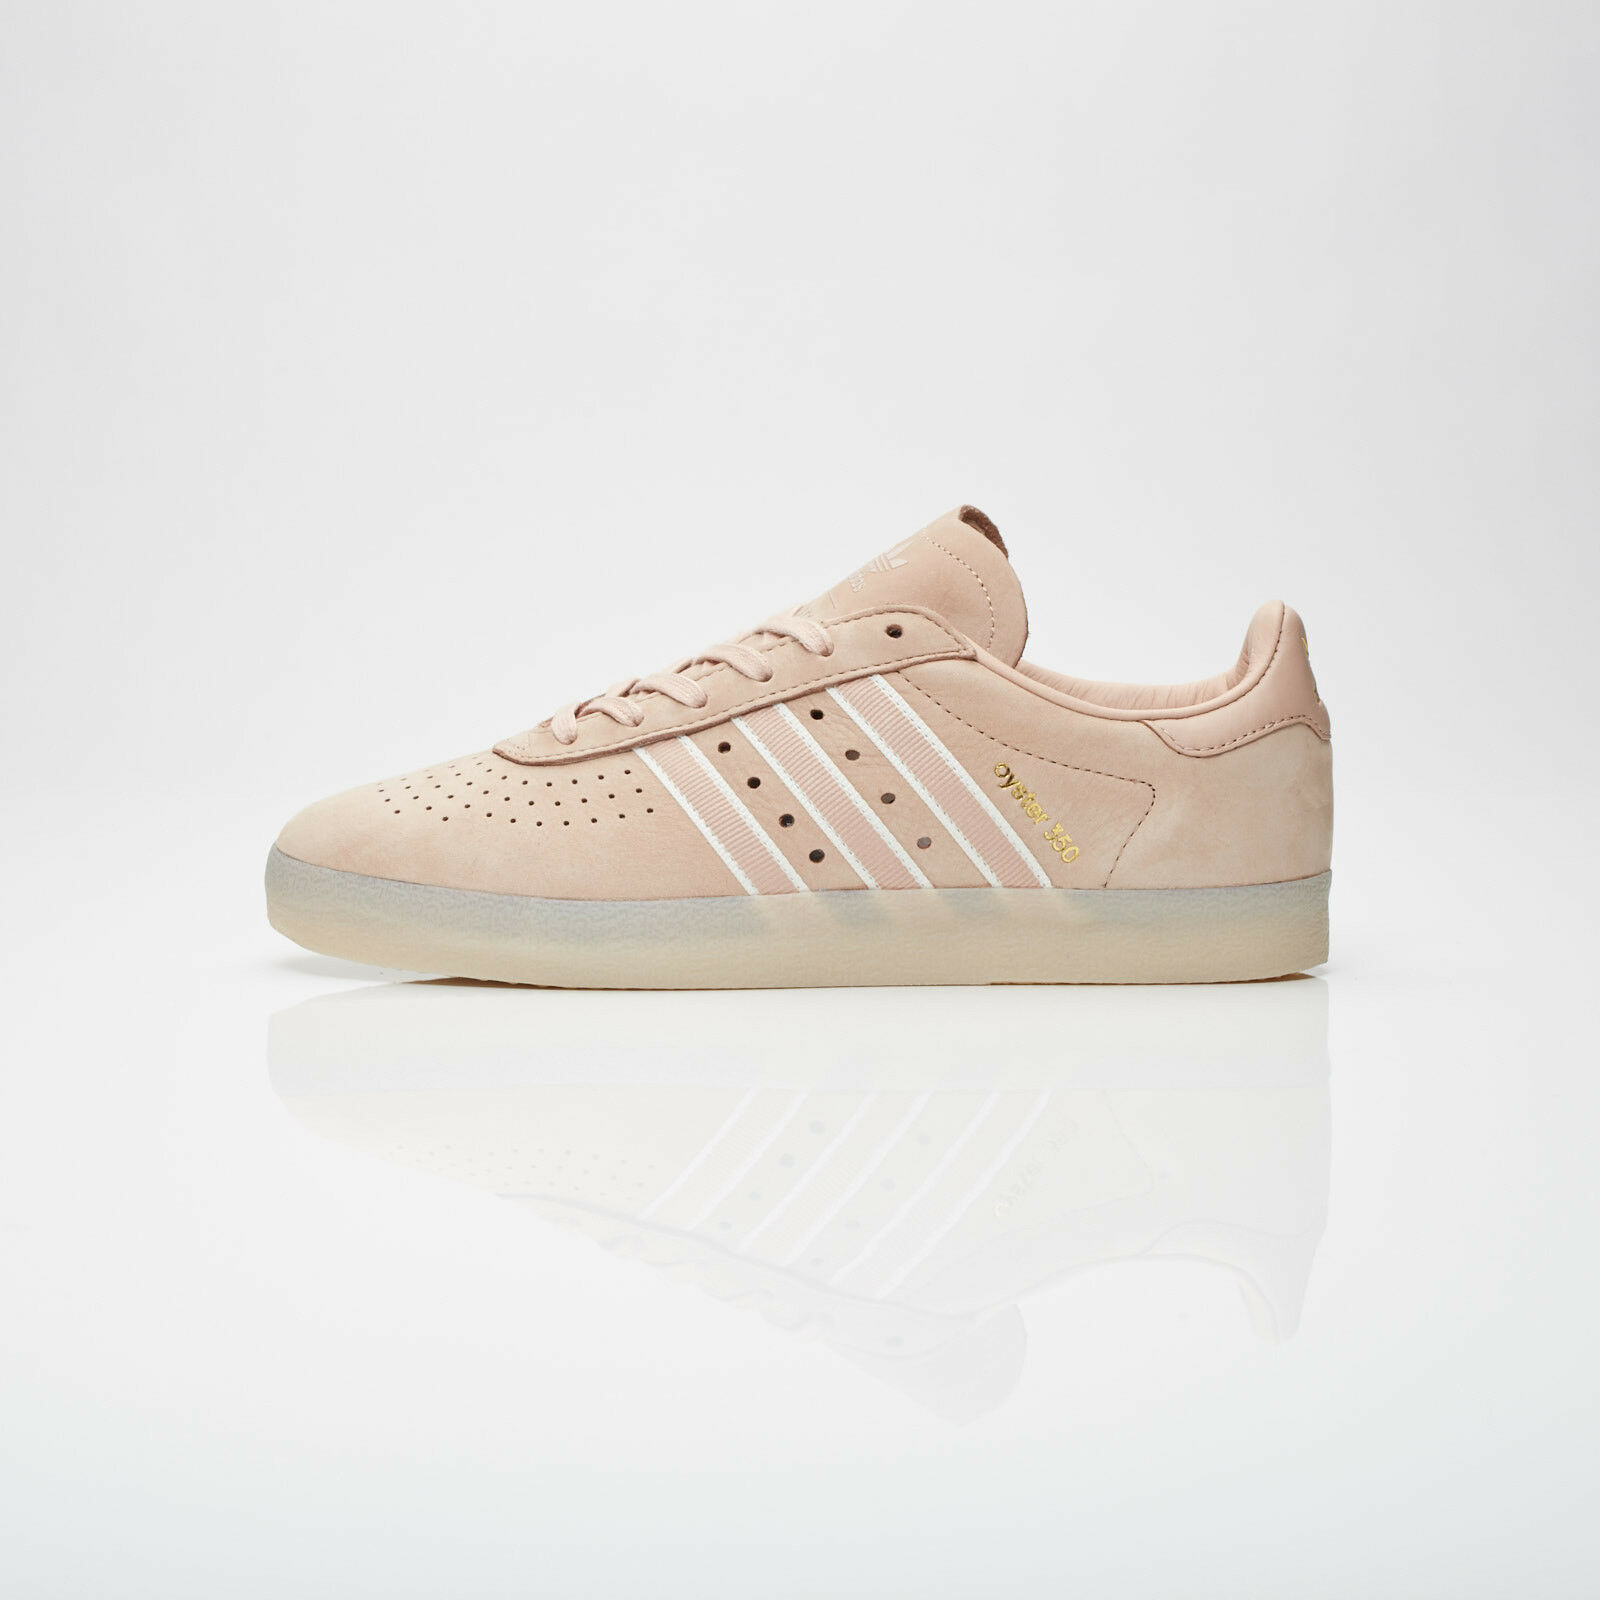 9.5 NEW adidas Originals X OYSTER HOLDINGS 350 DB1976 Ash Pearl Chalk White gold